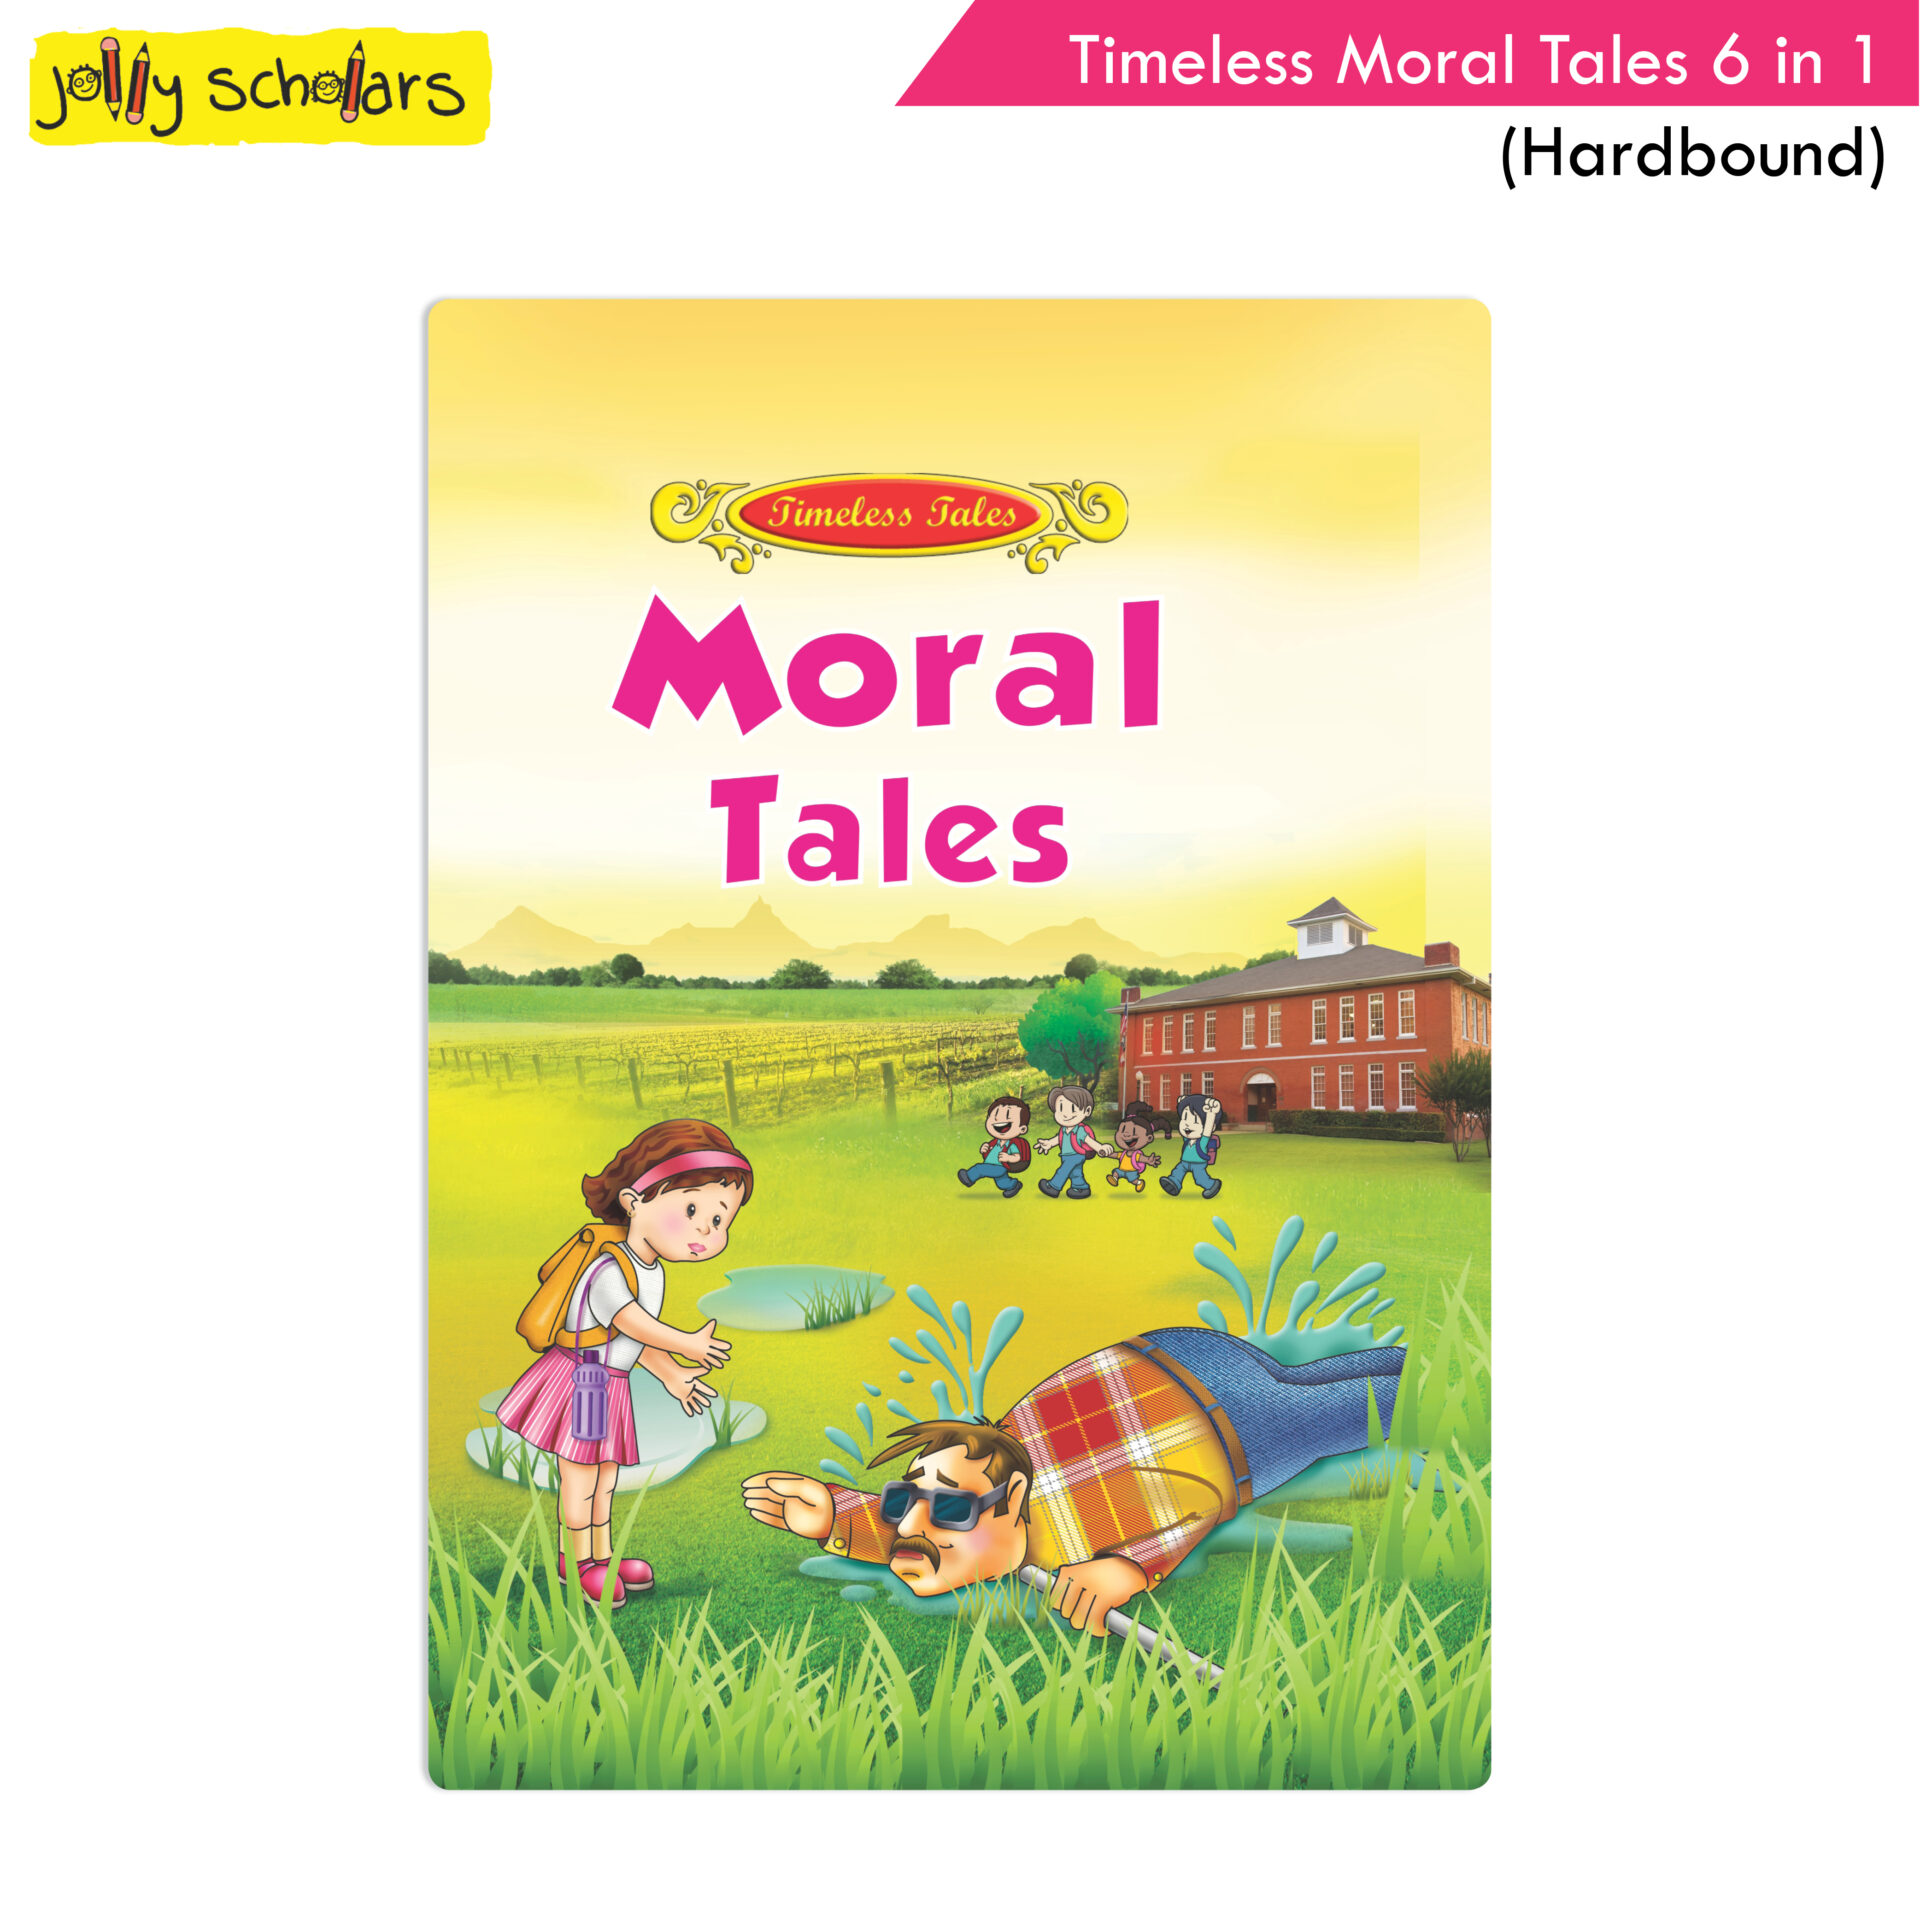 Jolly Scholars Timeless Moral Tales 6 in 1 Hard Bound 1